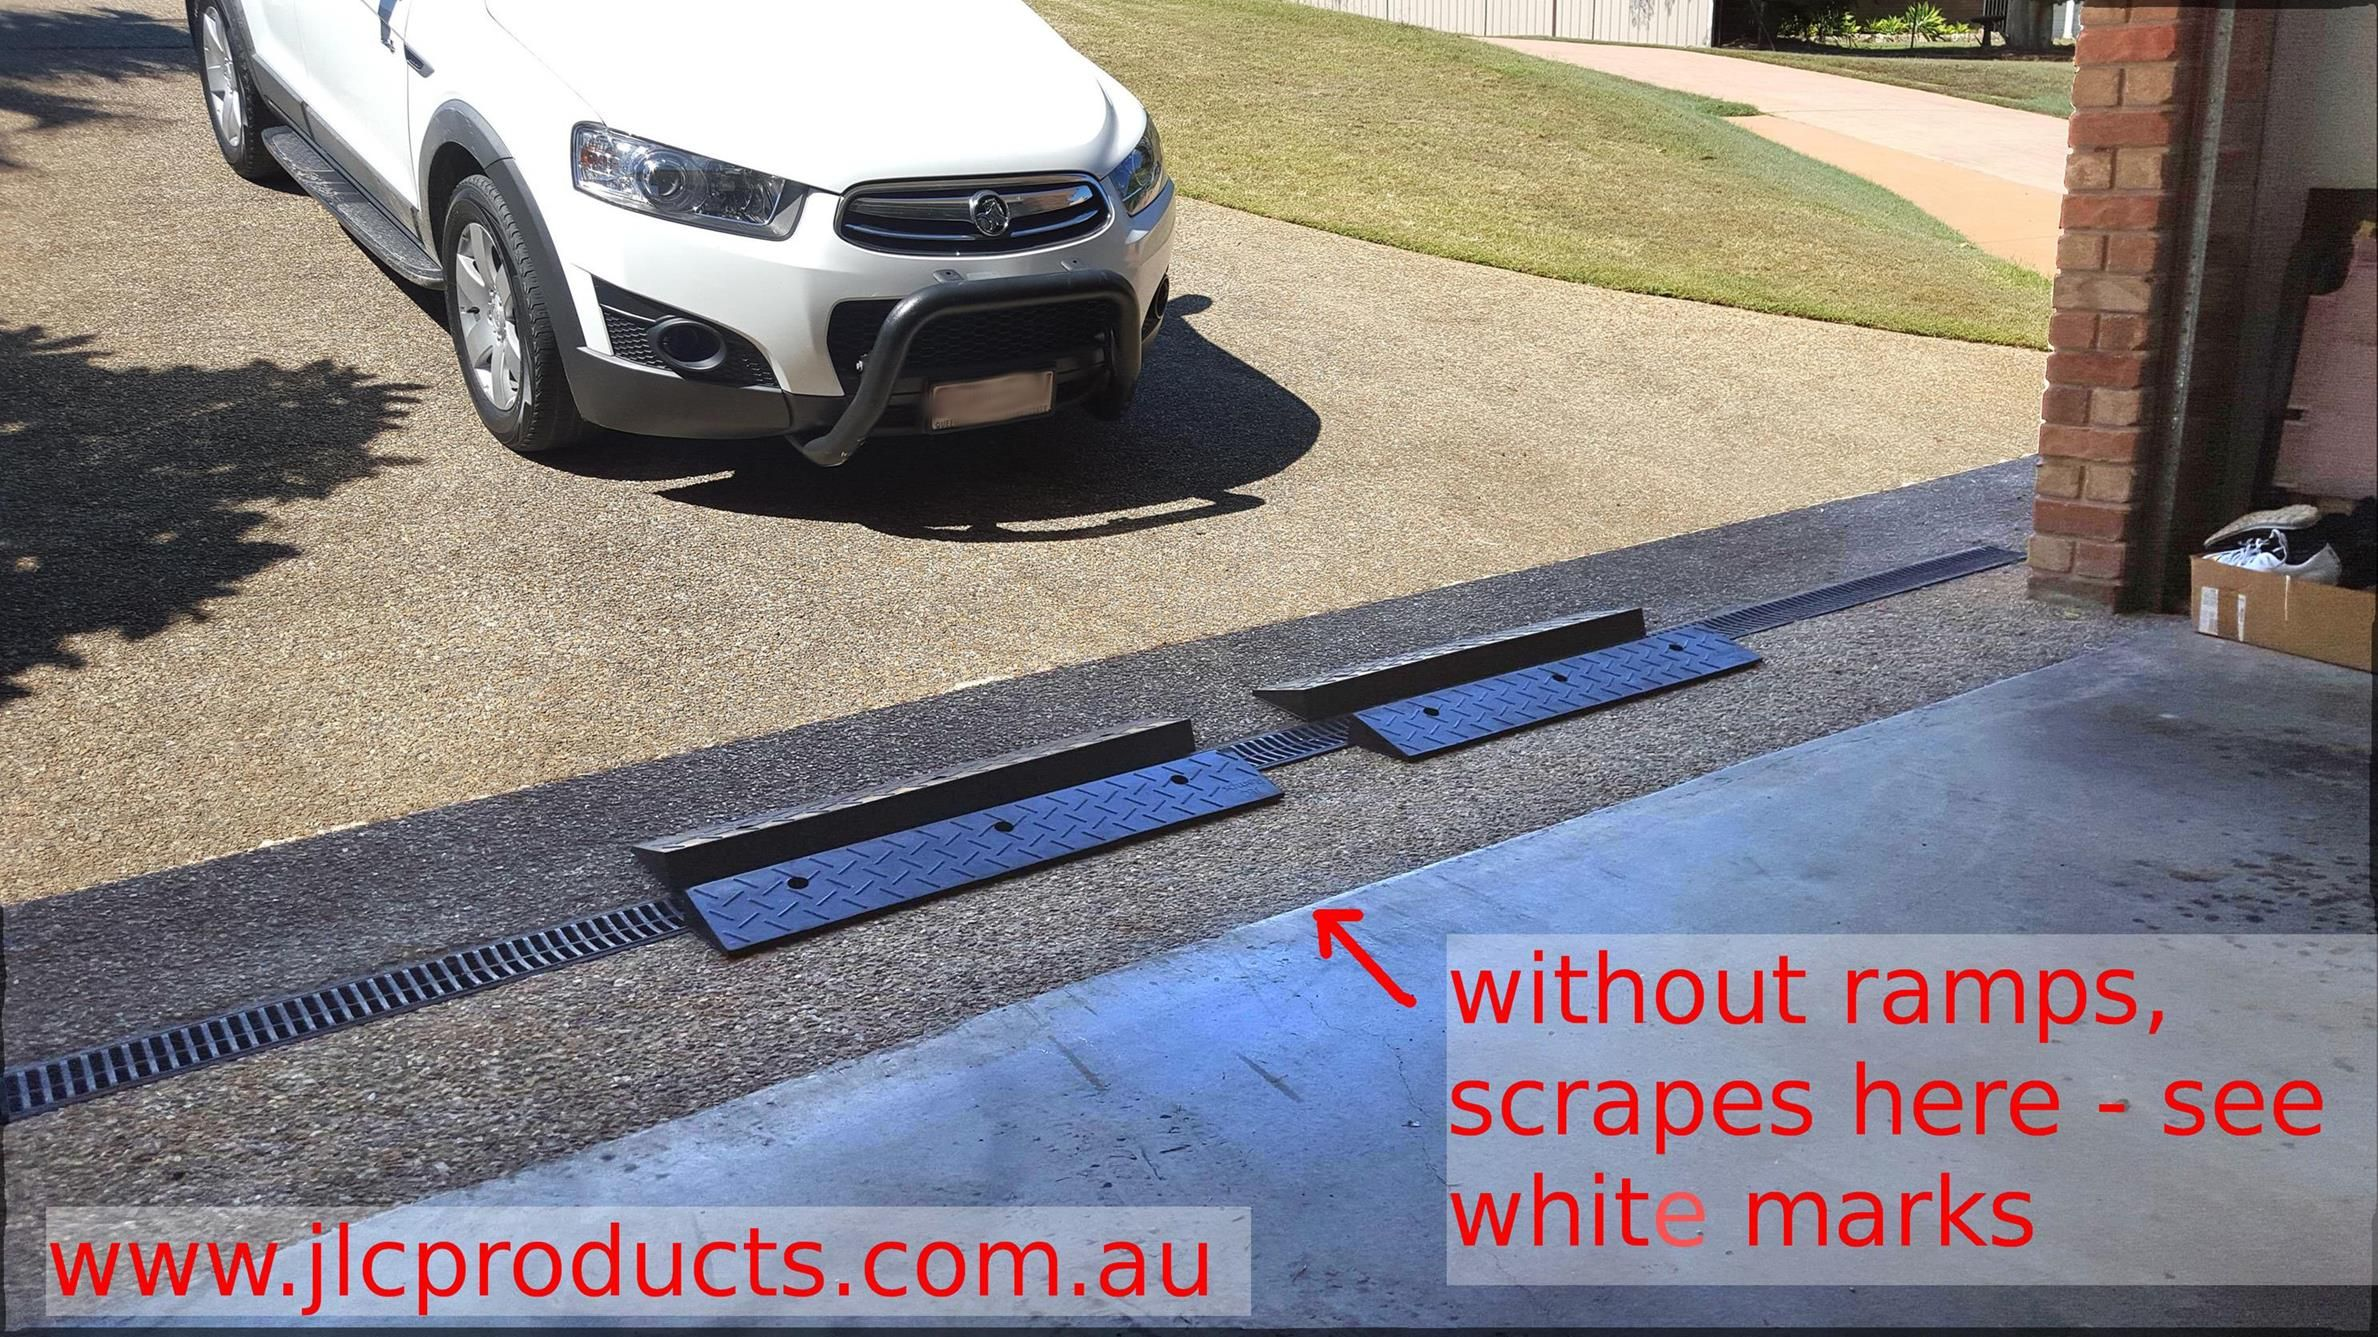 Jlc Ramps To Prevent Car Bottom Scraping On Entry To Garage Due To A Steep Driveway Goto Www Jlcproducts Com Au For More Rubber Ramp Car Ramps Driveway Ramp